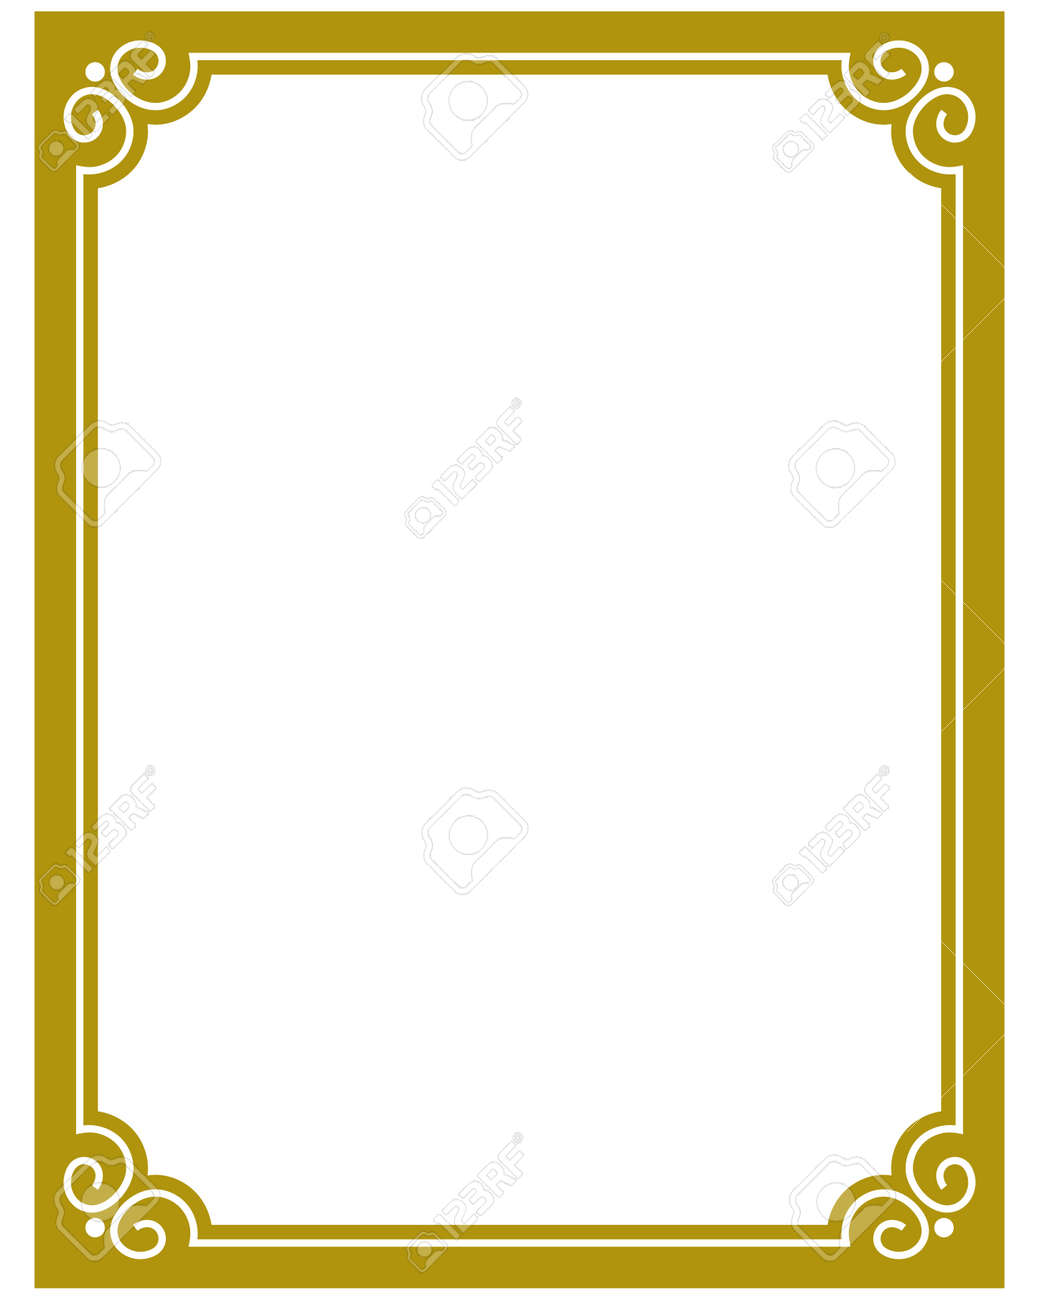 yellow gold border frame deco vector art simple line corner stock vector 52559384 - Yellow Frame